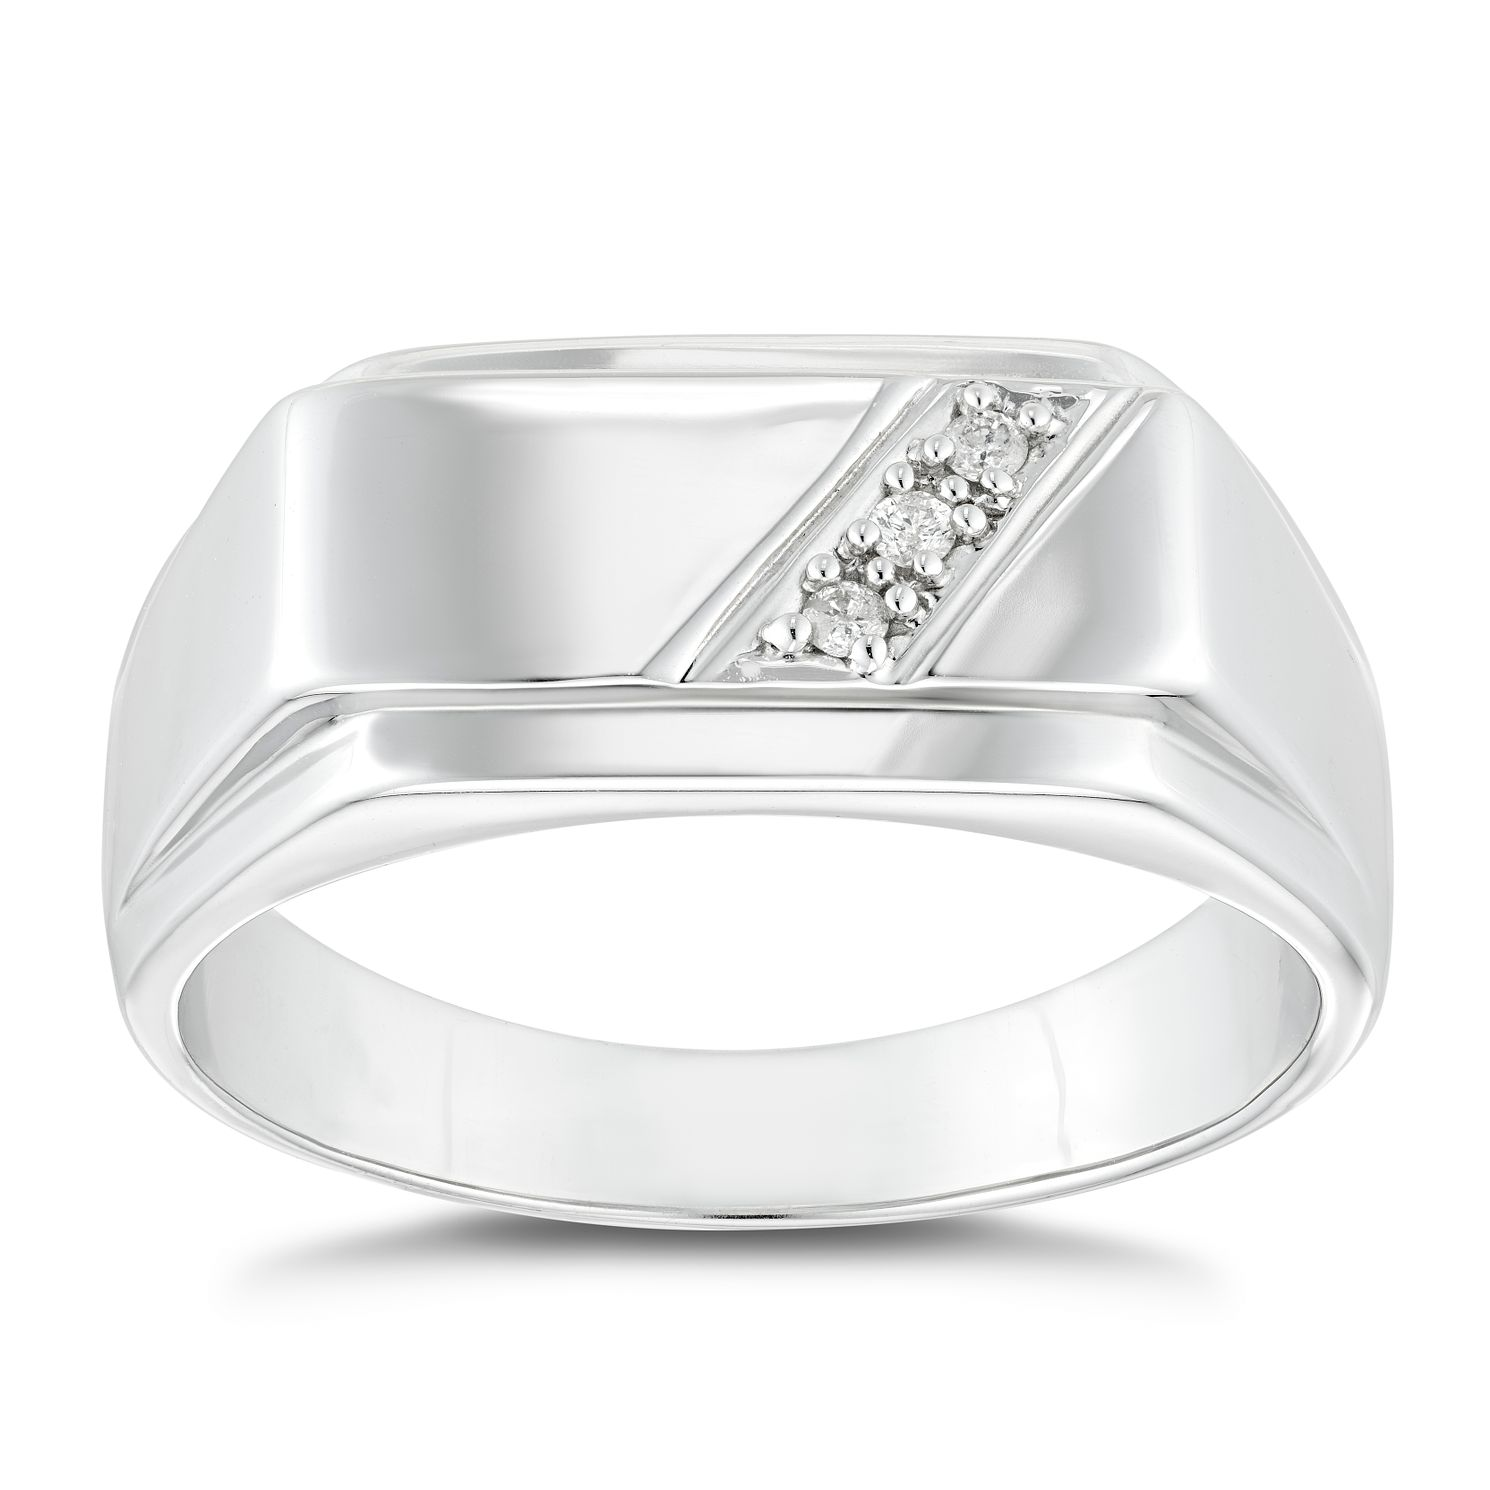 Silver Diamond Set Signet Ring - Product number 4913264